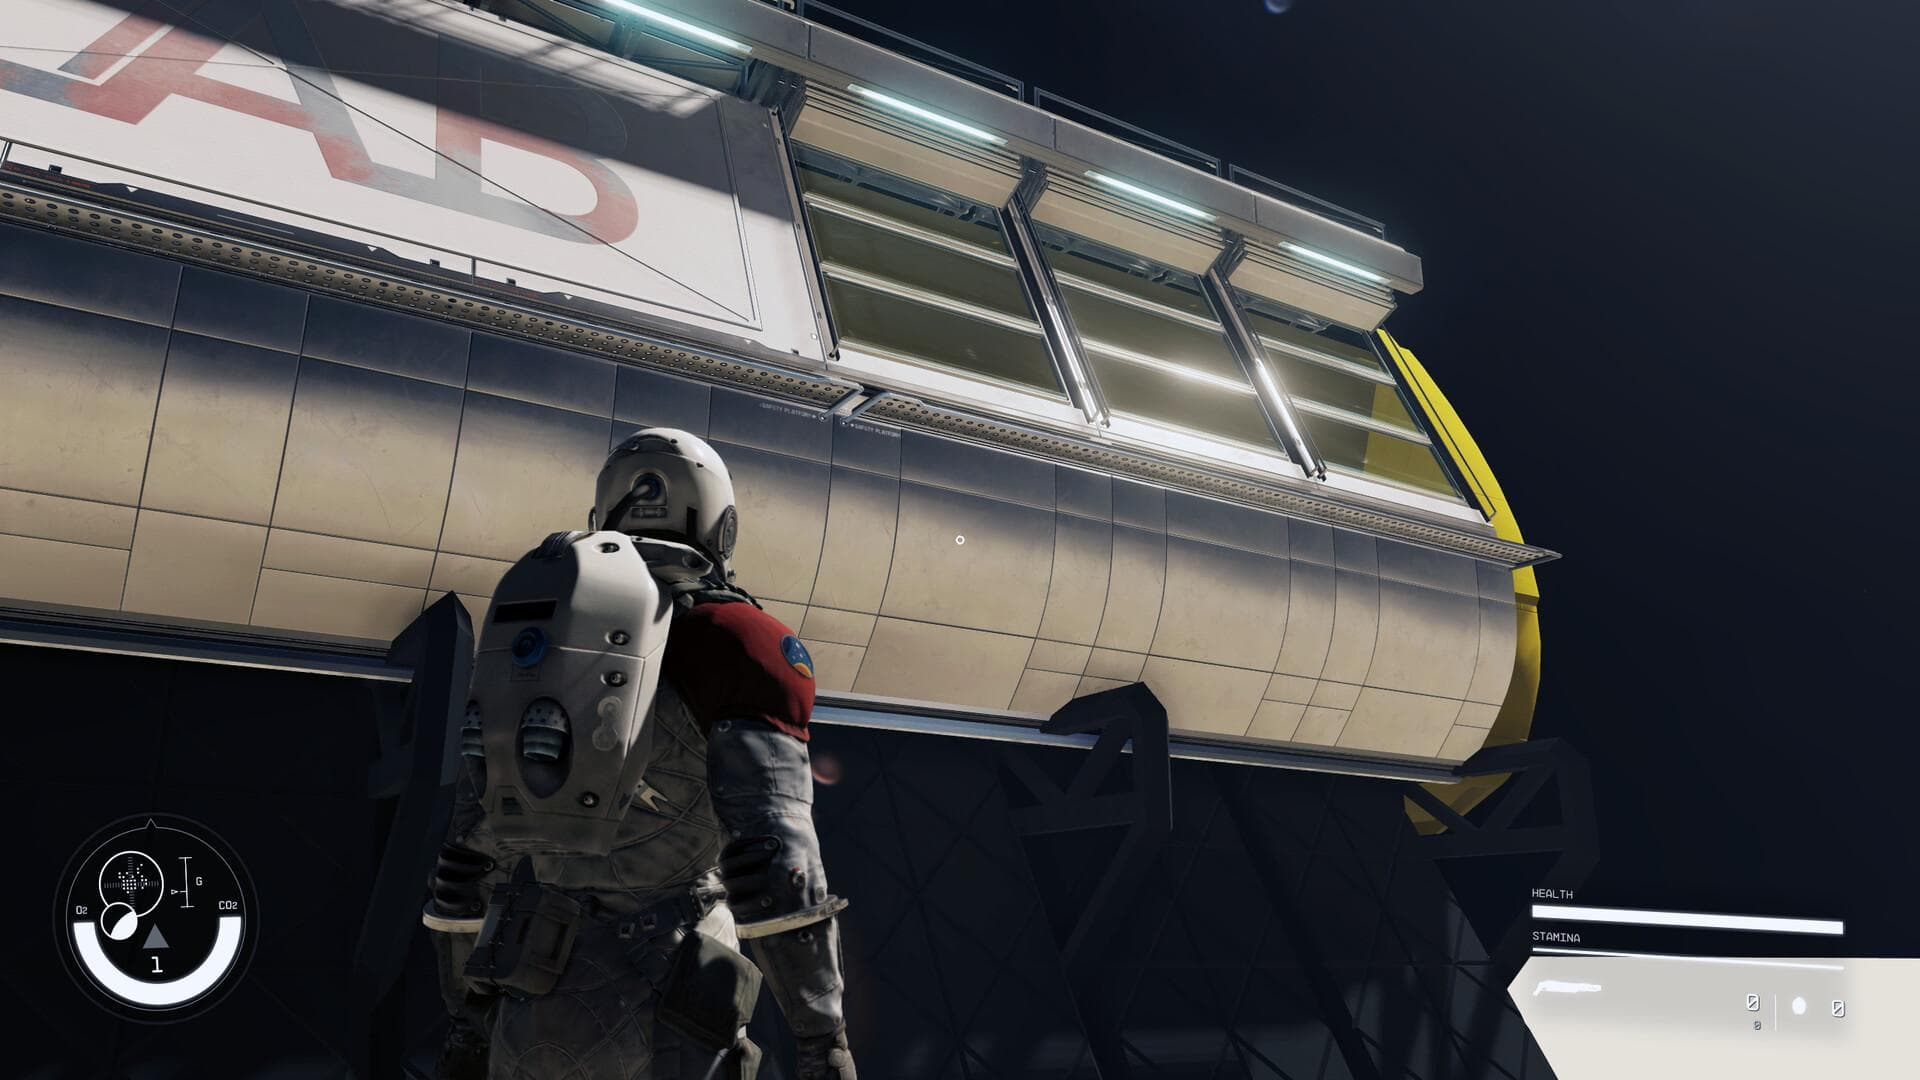 Supposed Starfield leaked image shows an astronaunt looking at space ship